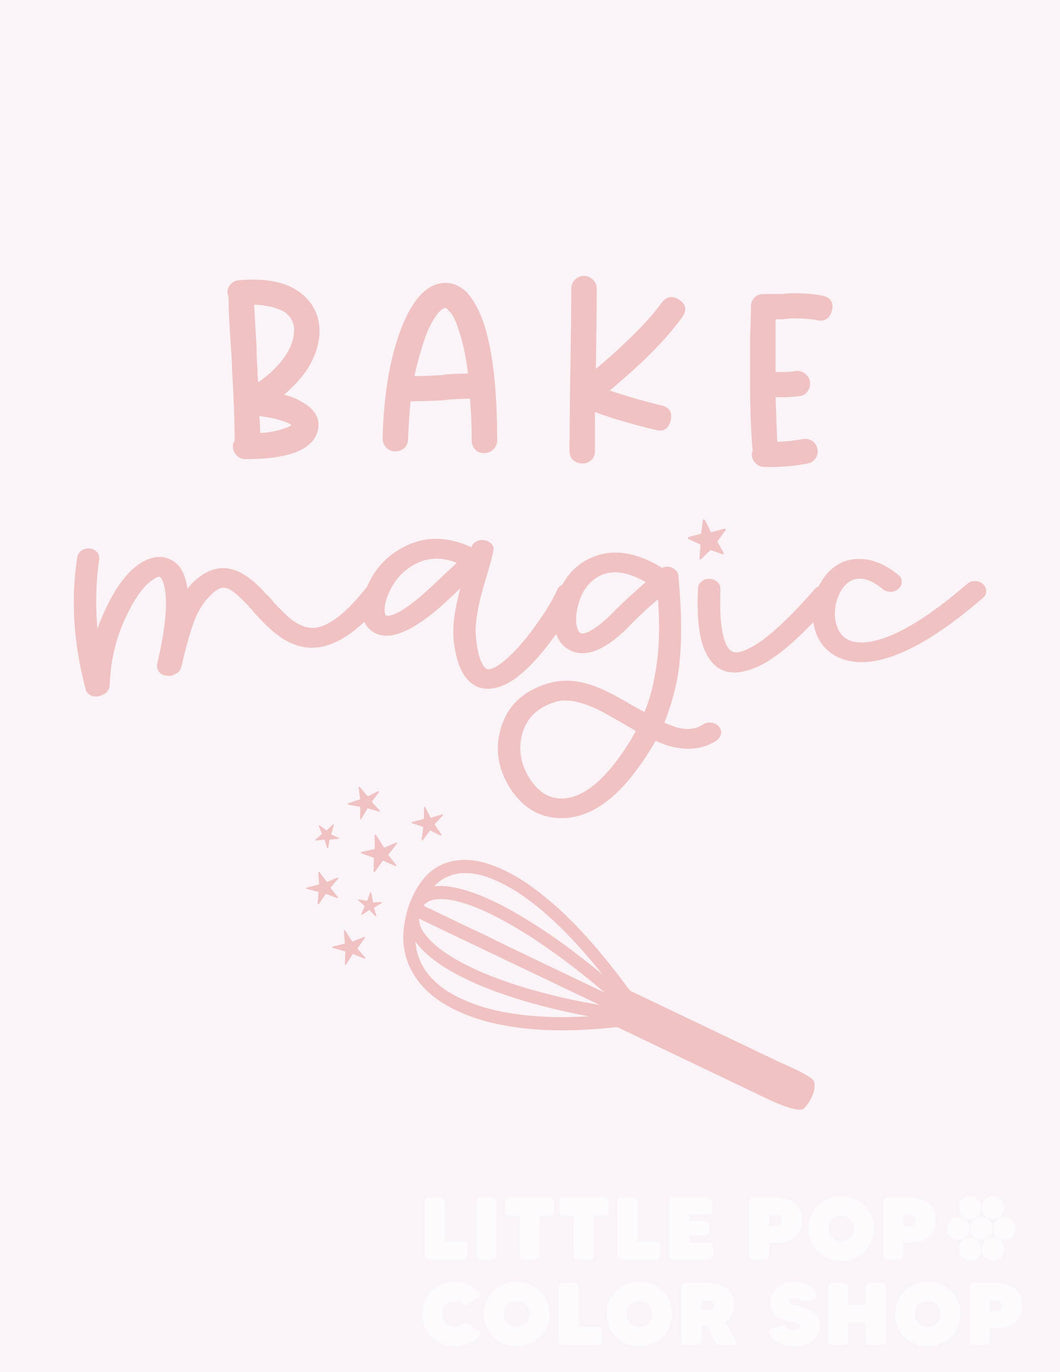 Bake Magic - Play Kitchen Print